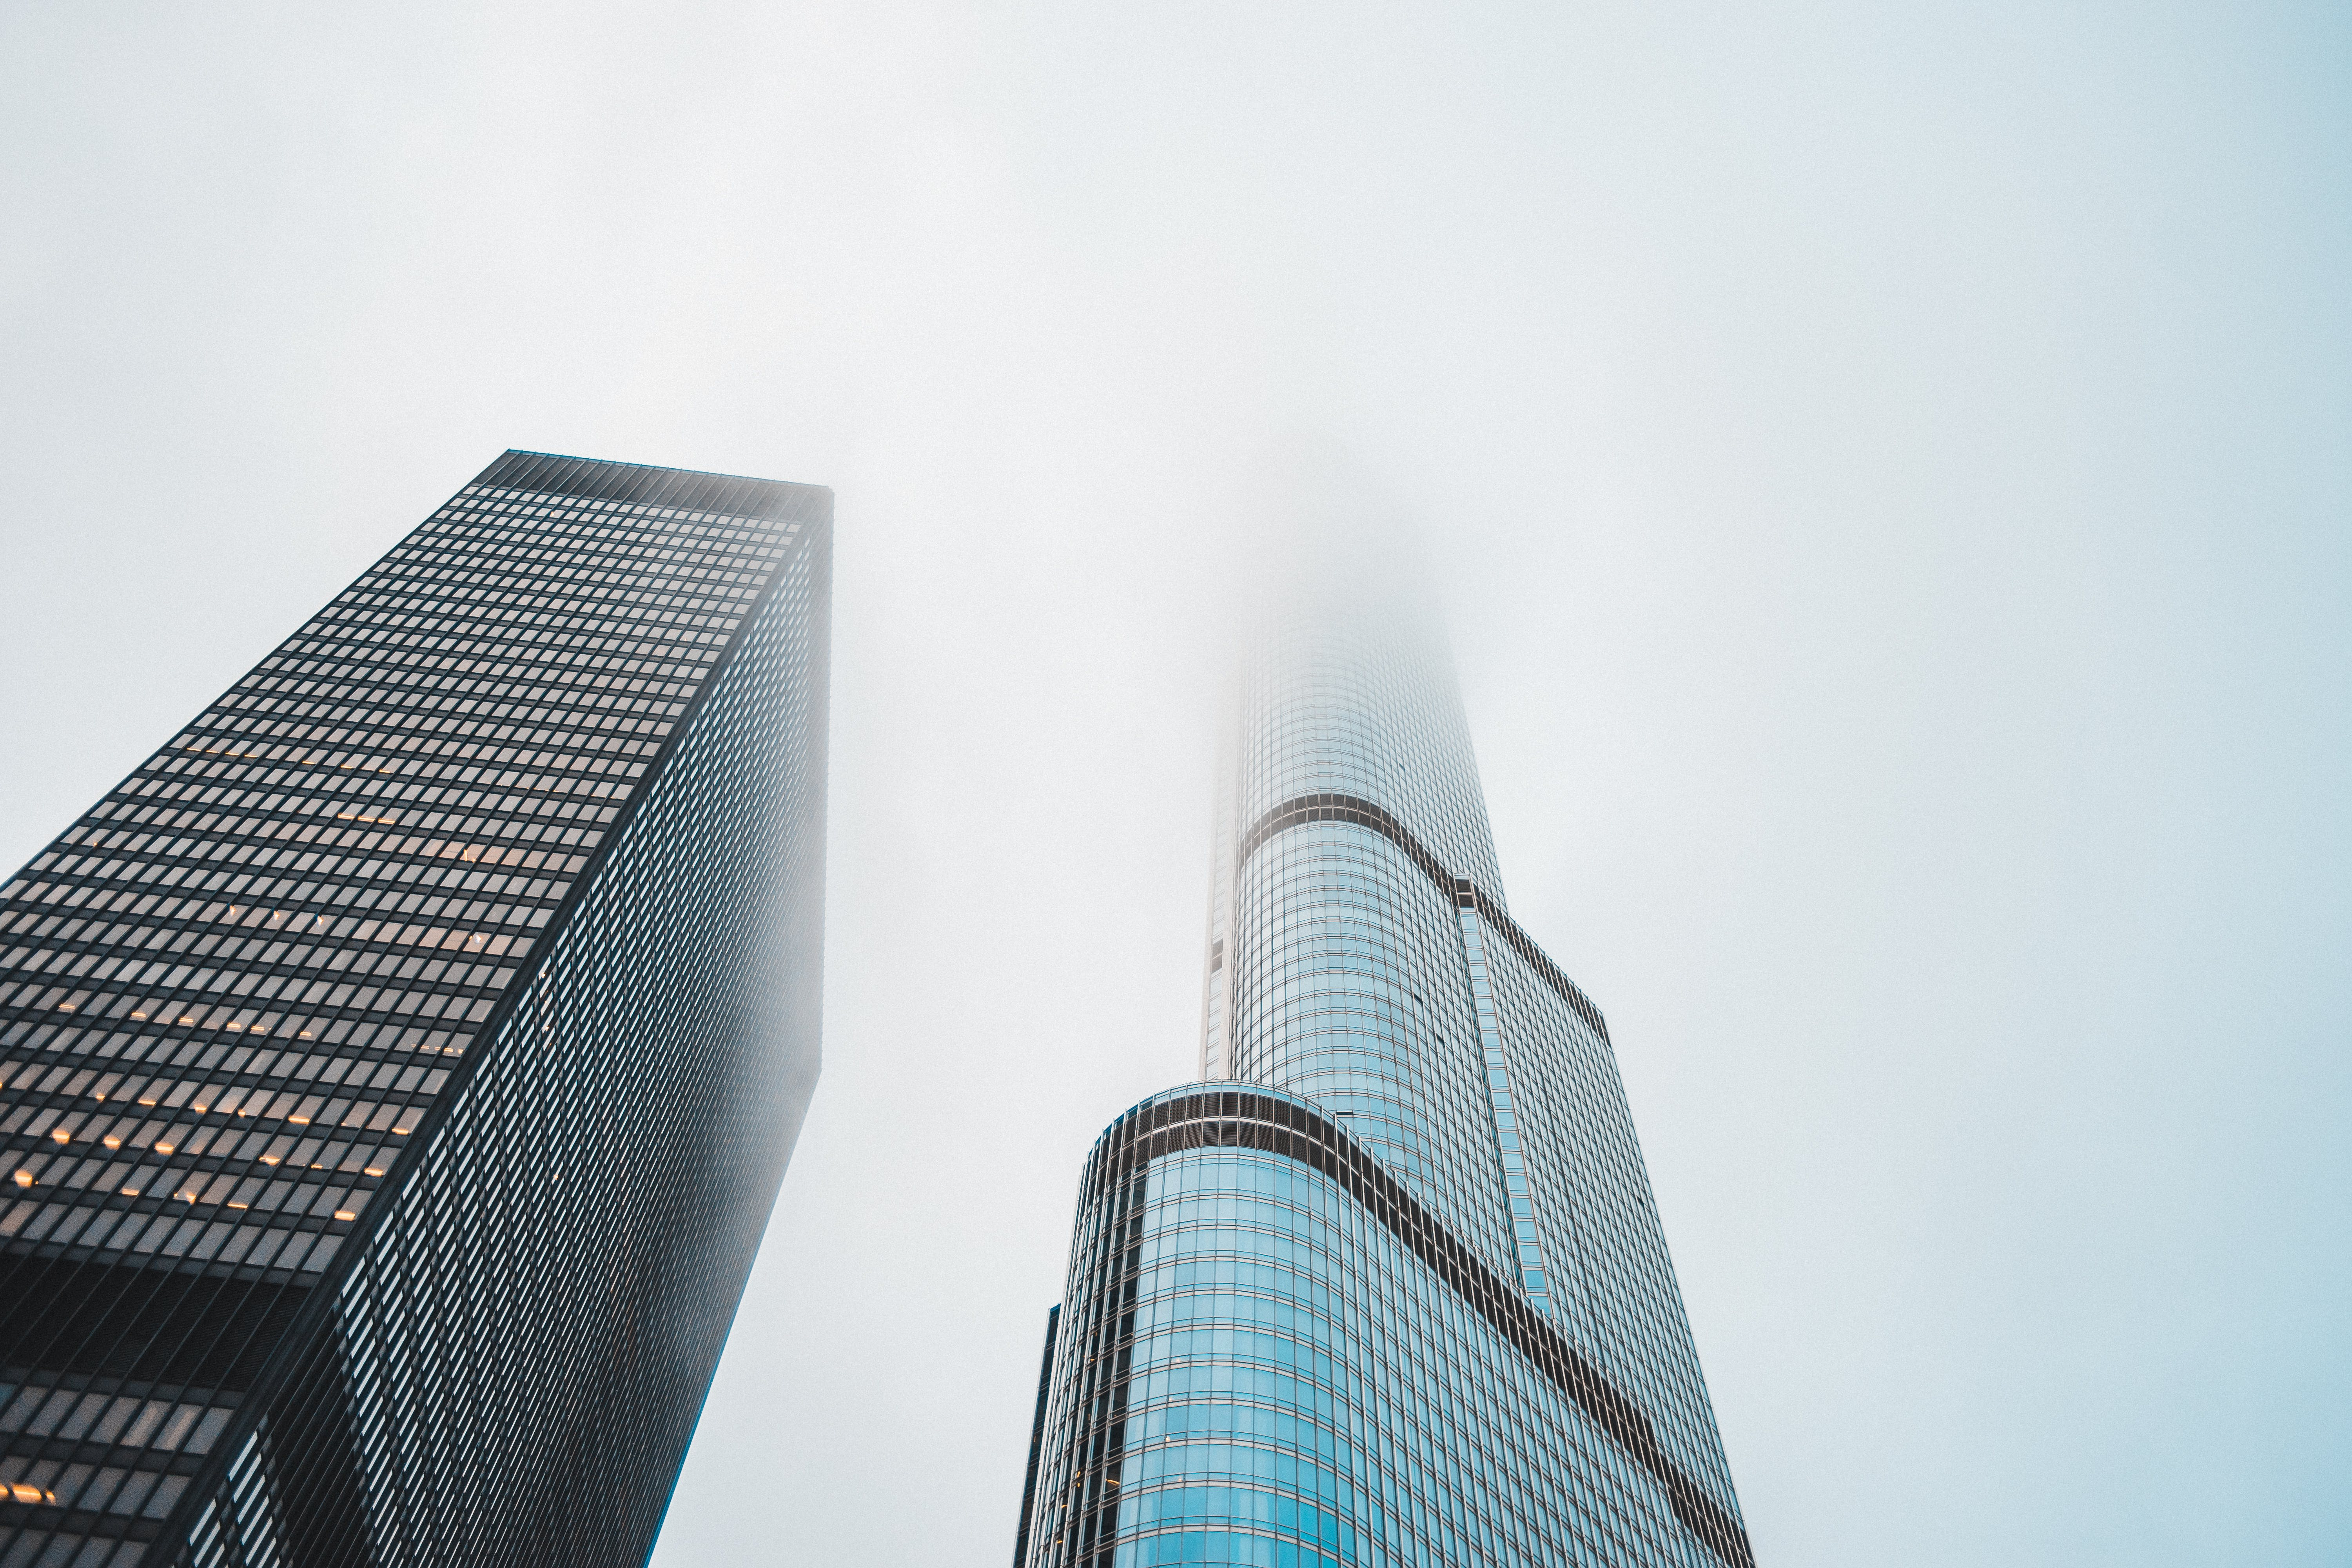 Worm's Eye View of Two Skyscrapers during Day